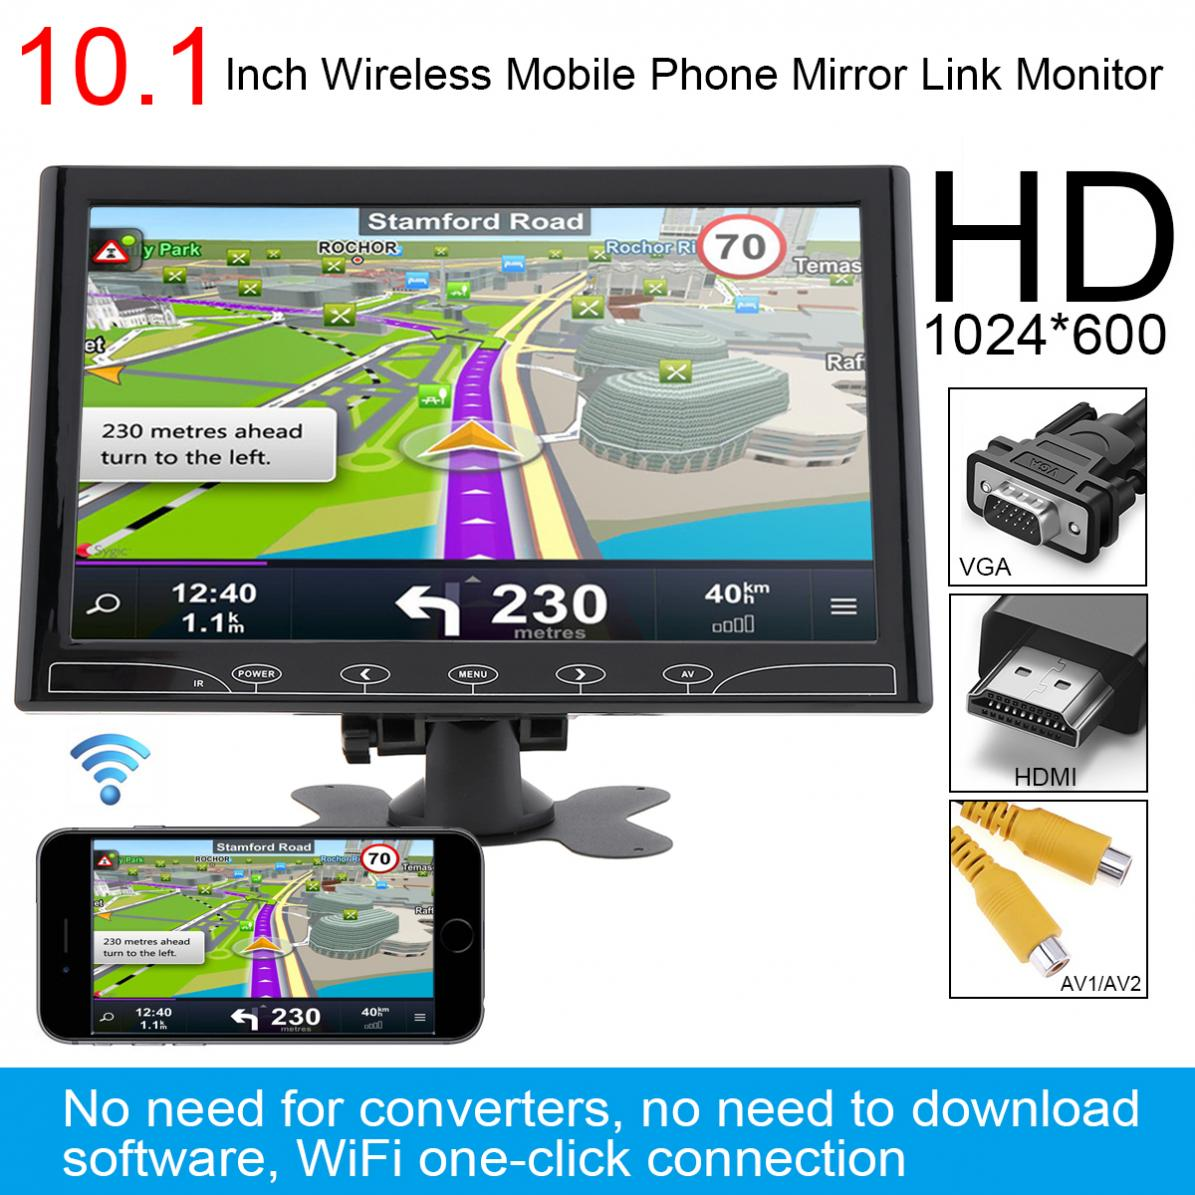 10.1 Inch HD IPS 1024*600 TFT LCD Multifunction Car Monitor support HDMI / VGA / AV / Wireless Mobile Phone Mirror Link цена 2017